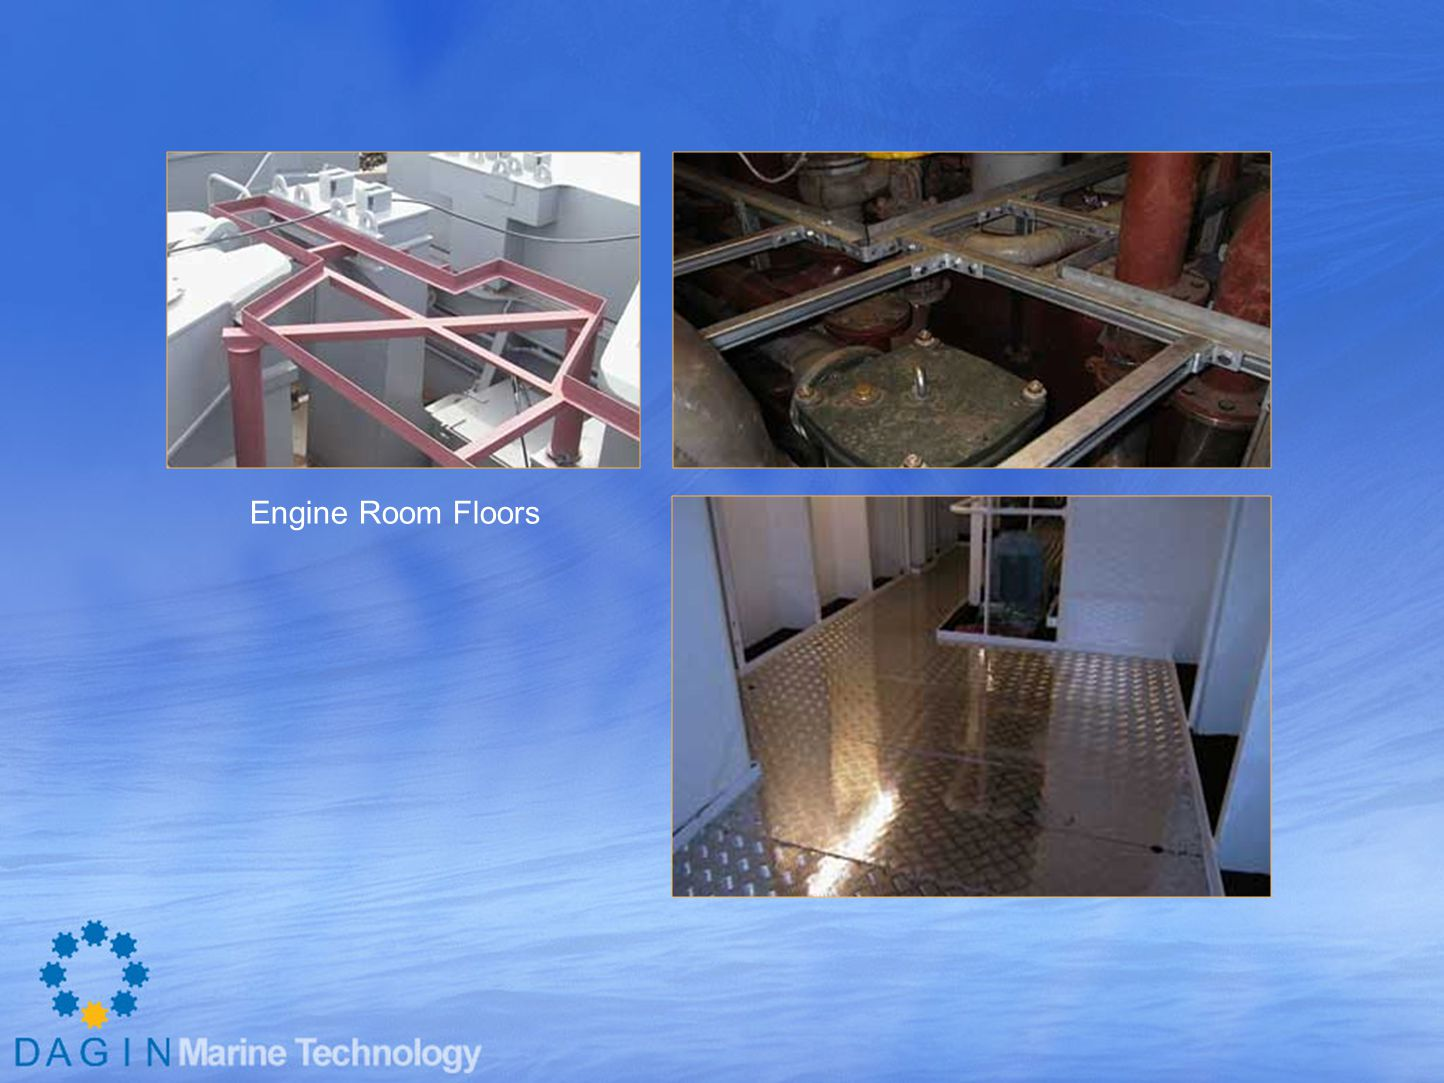 Engine Room Floors